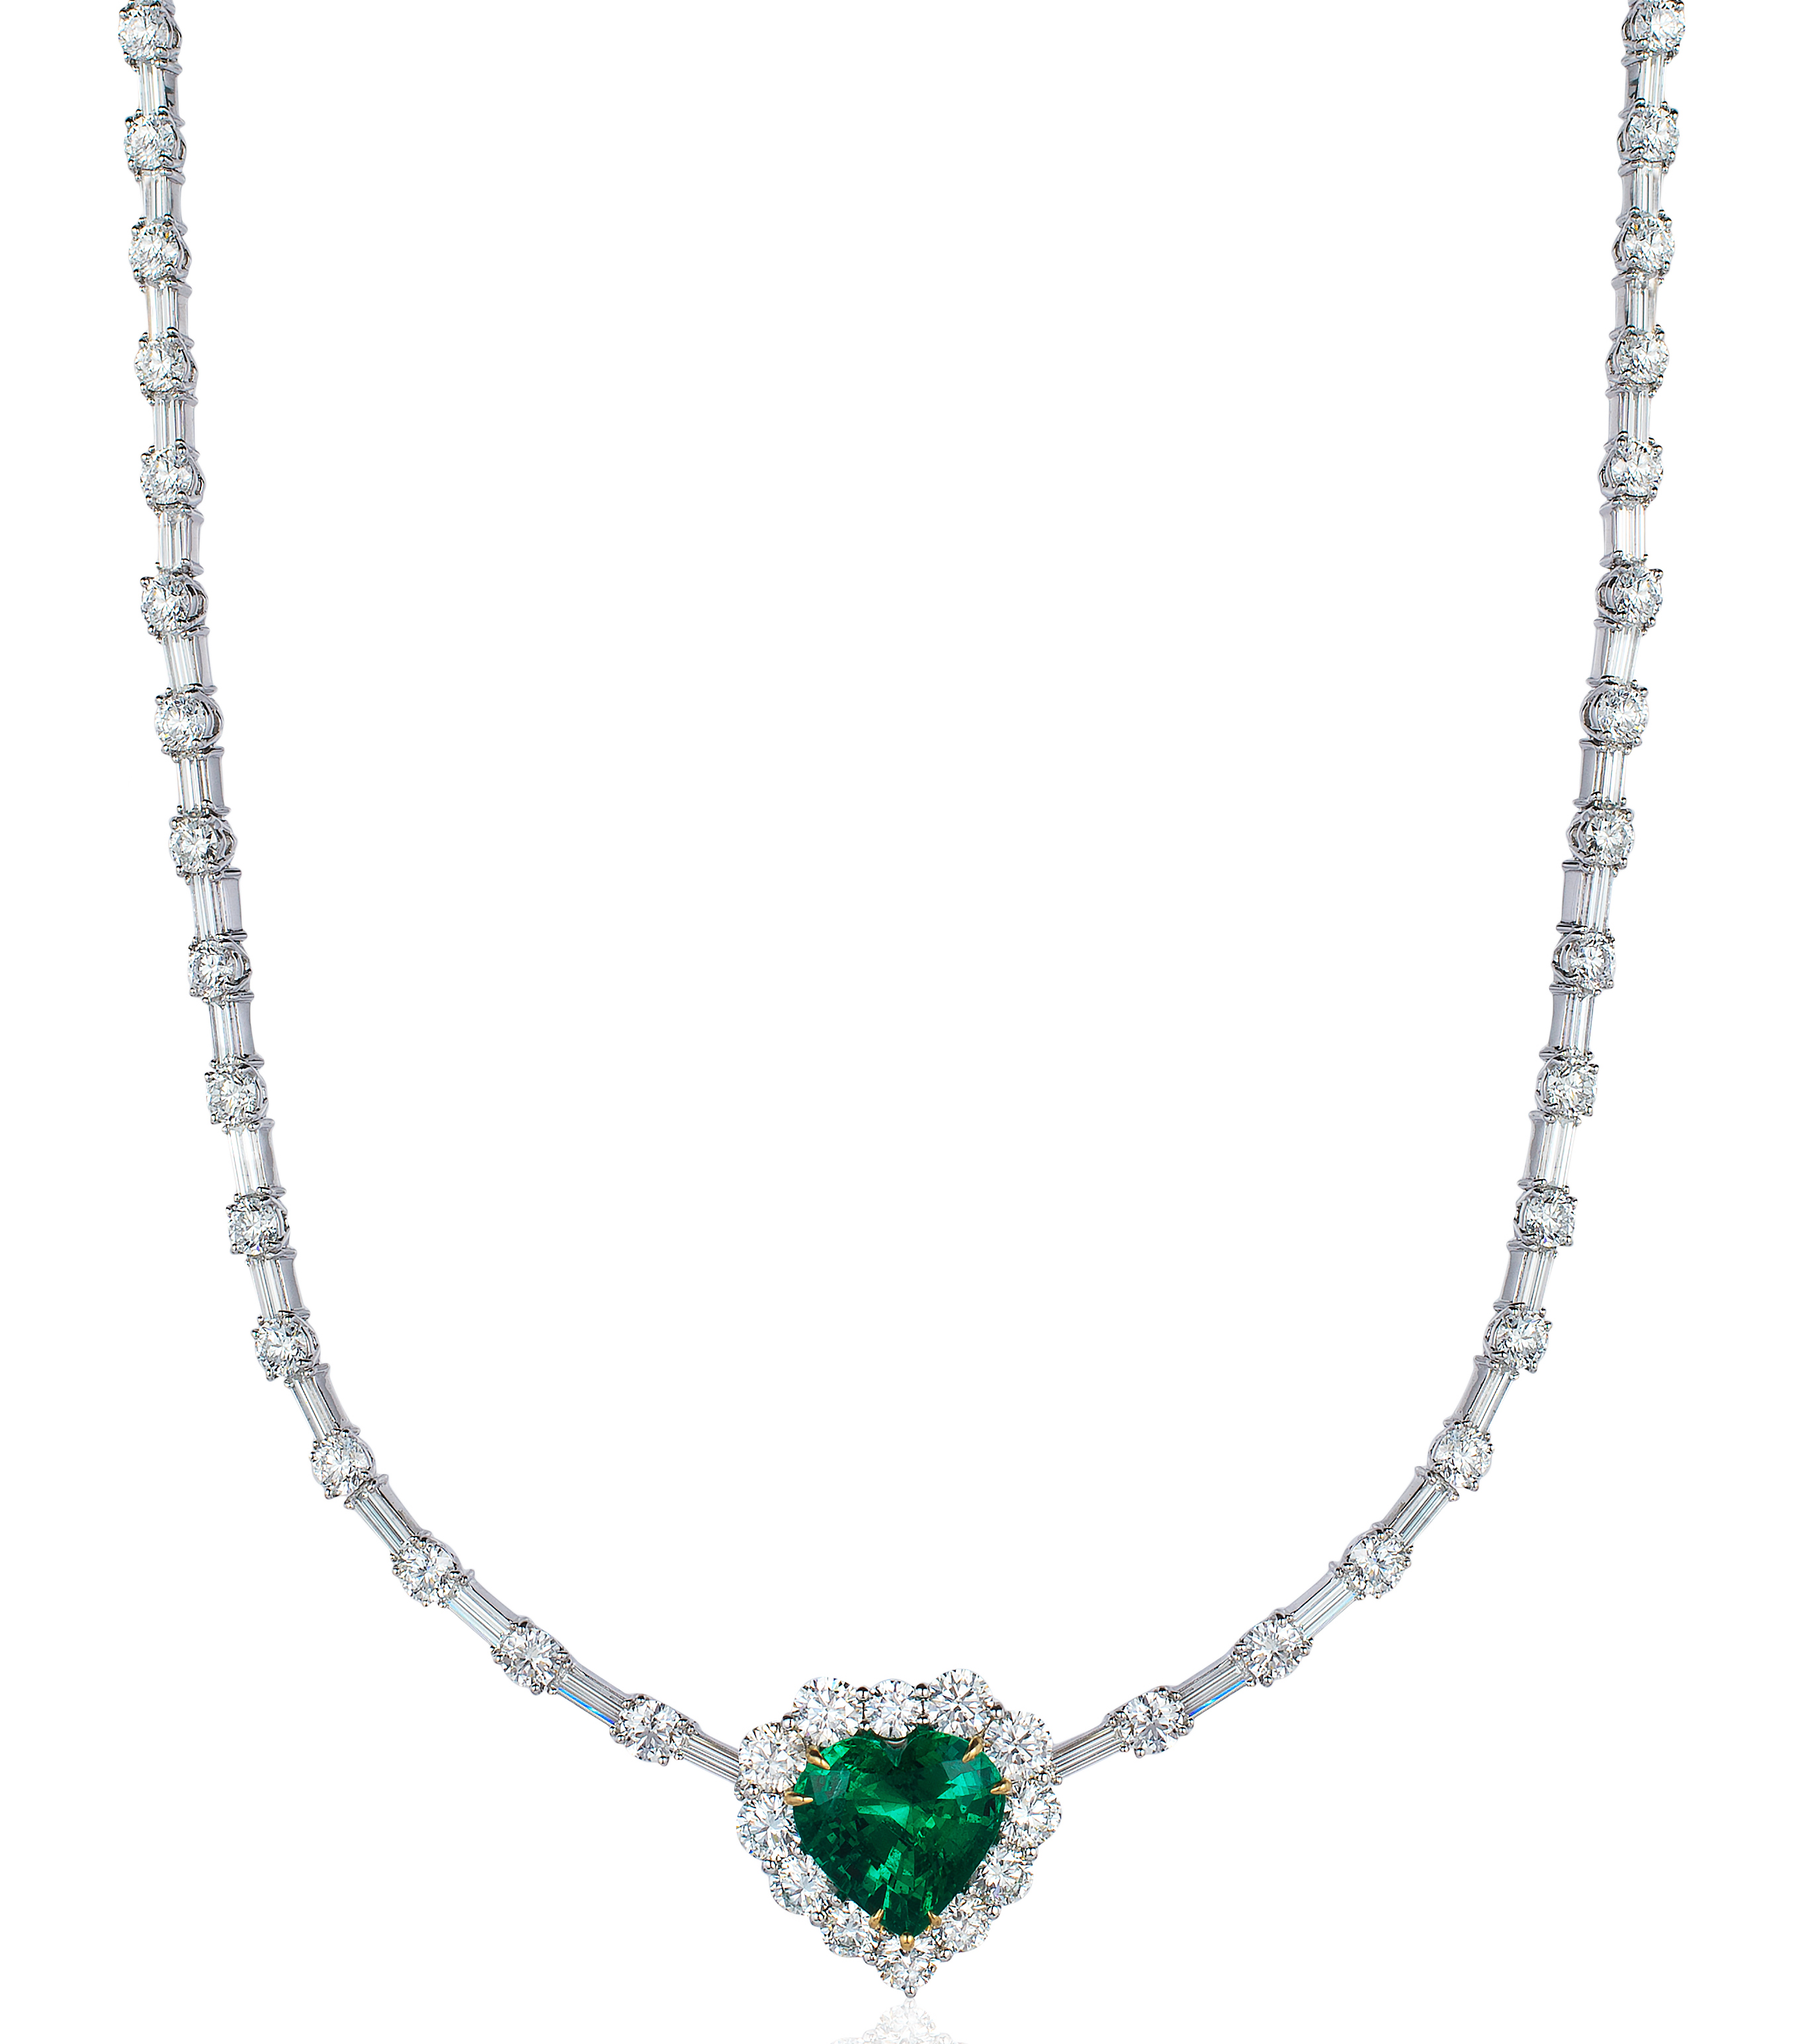 David Mor emerald heart and diamond necklace | JCK On Your Market